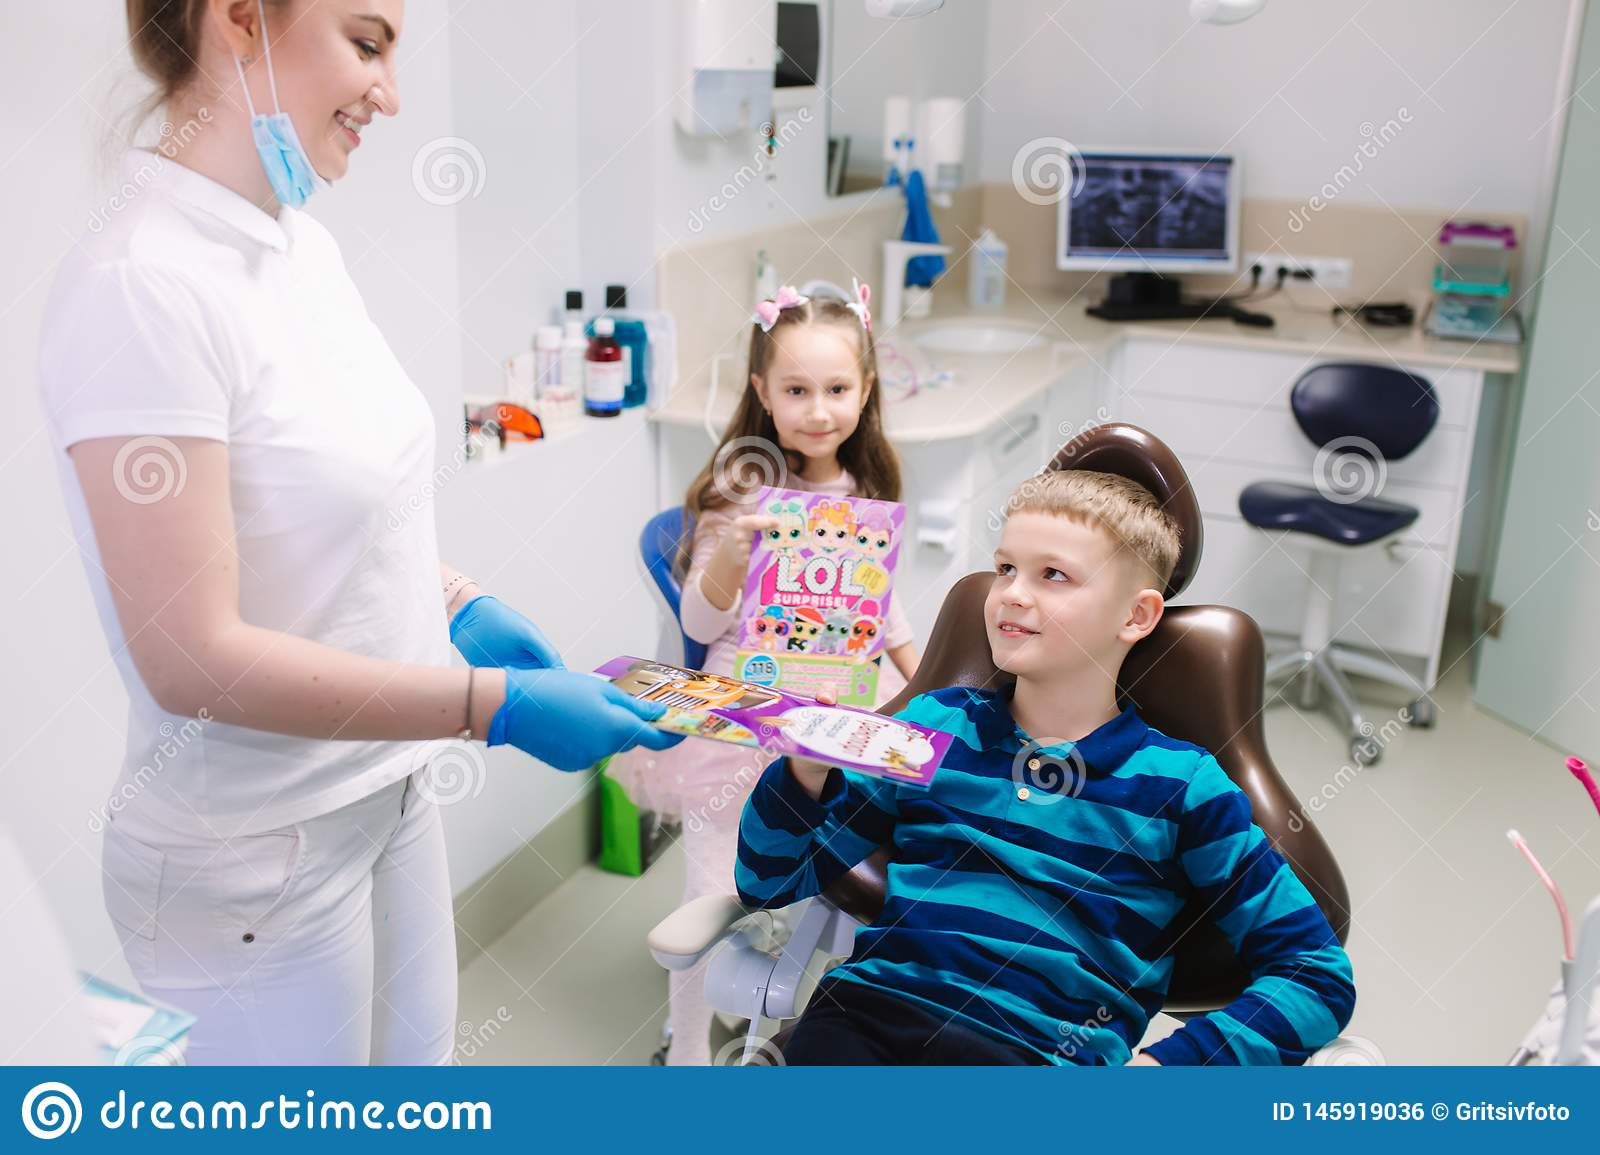 Dentist give a toy for little patient, happy children get a present